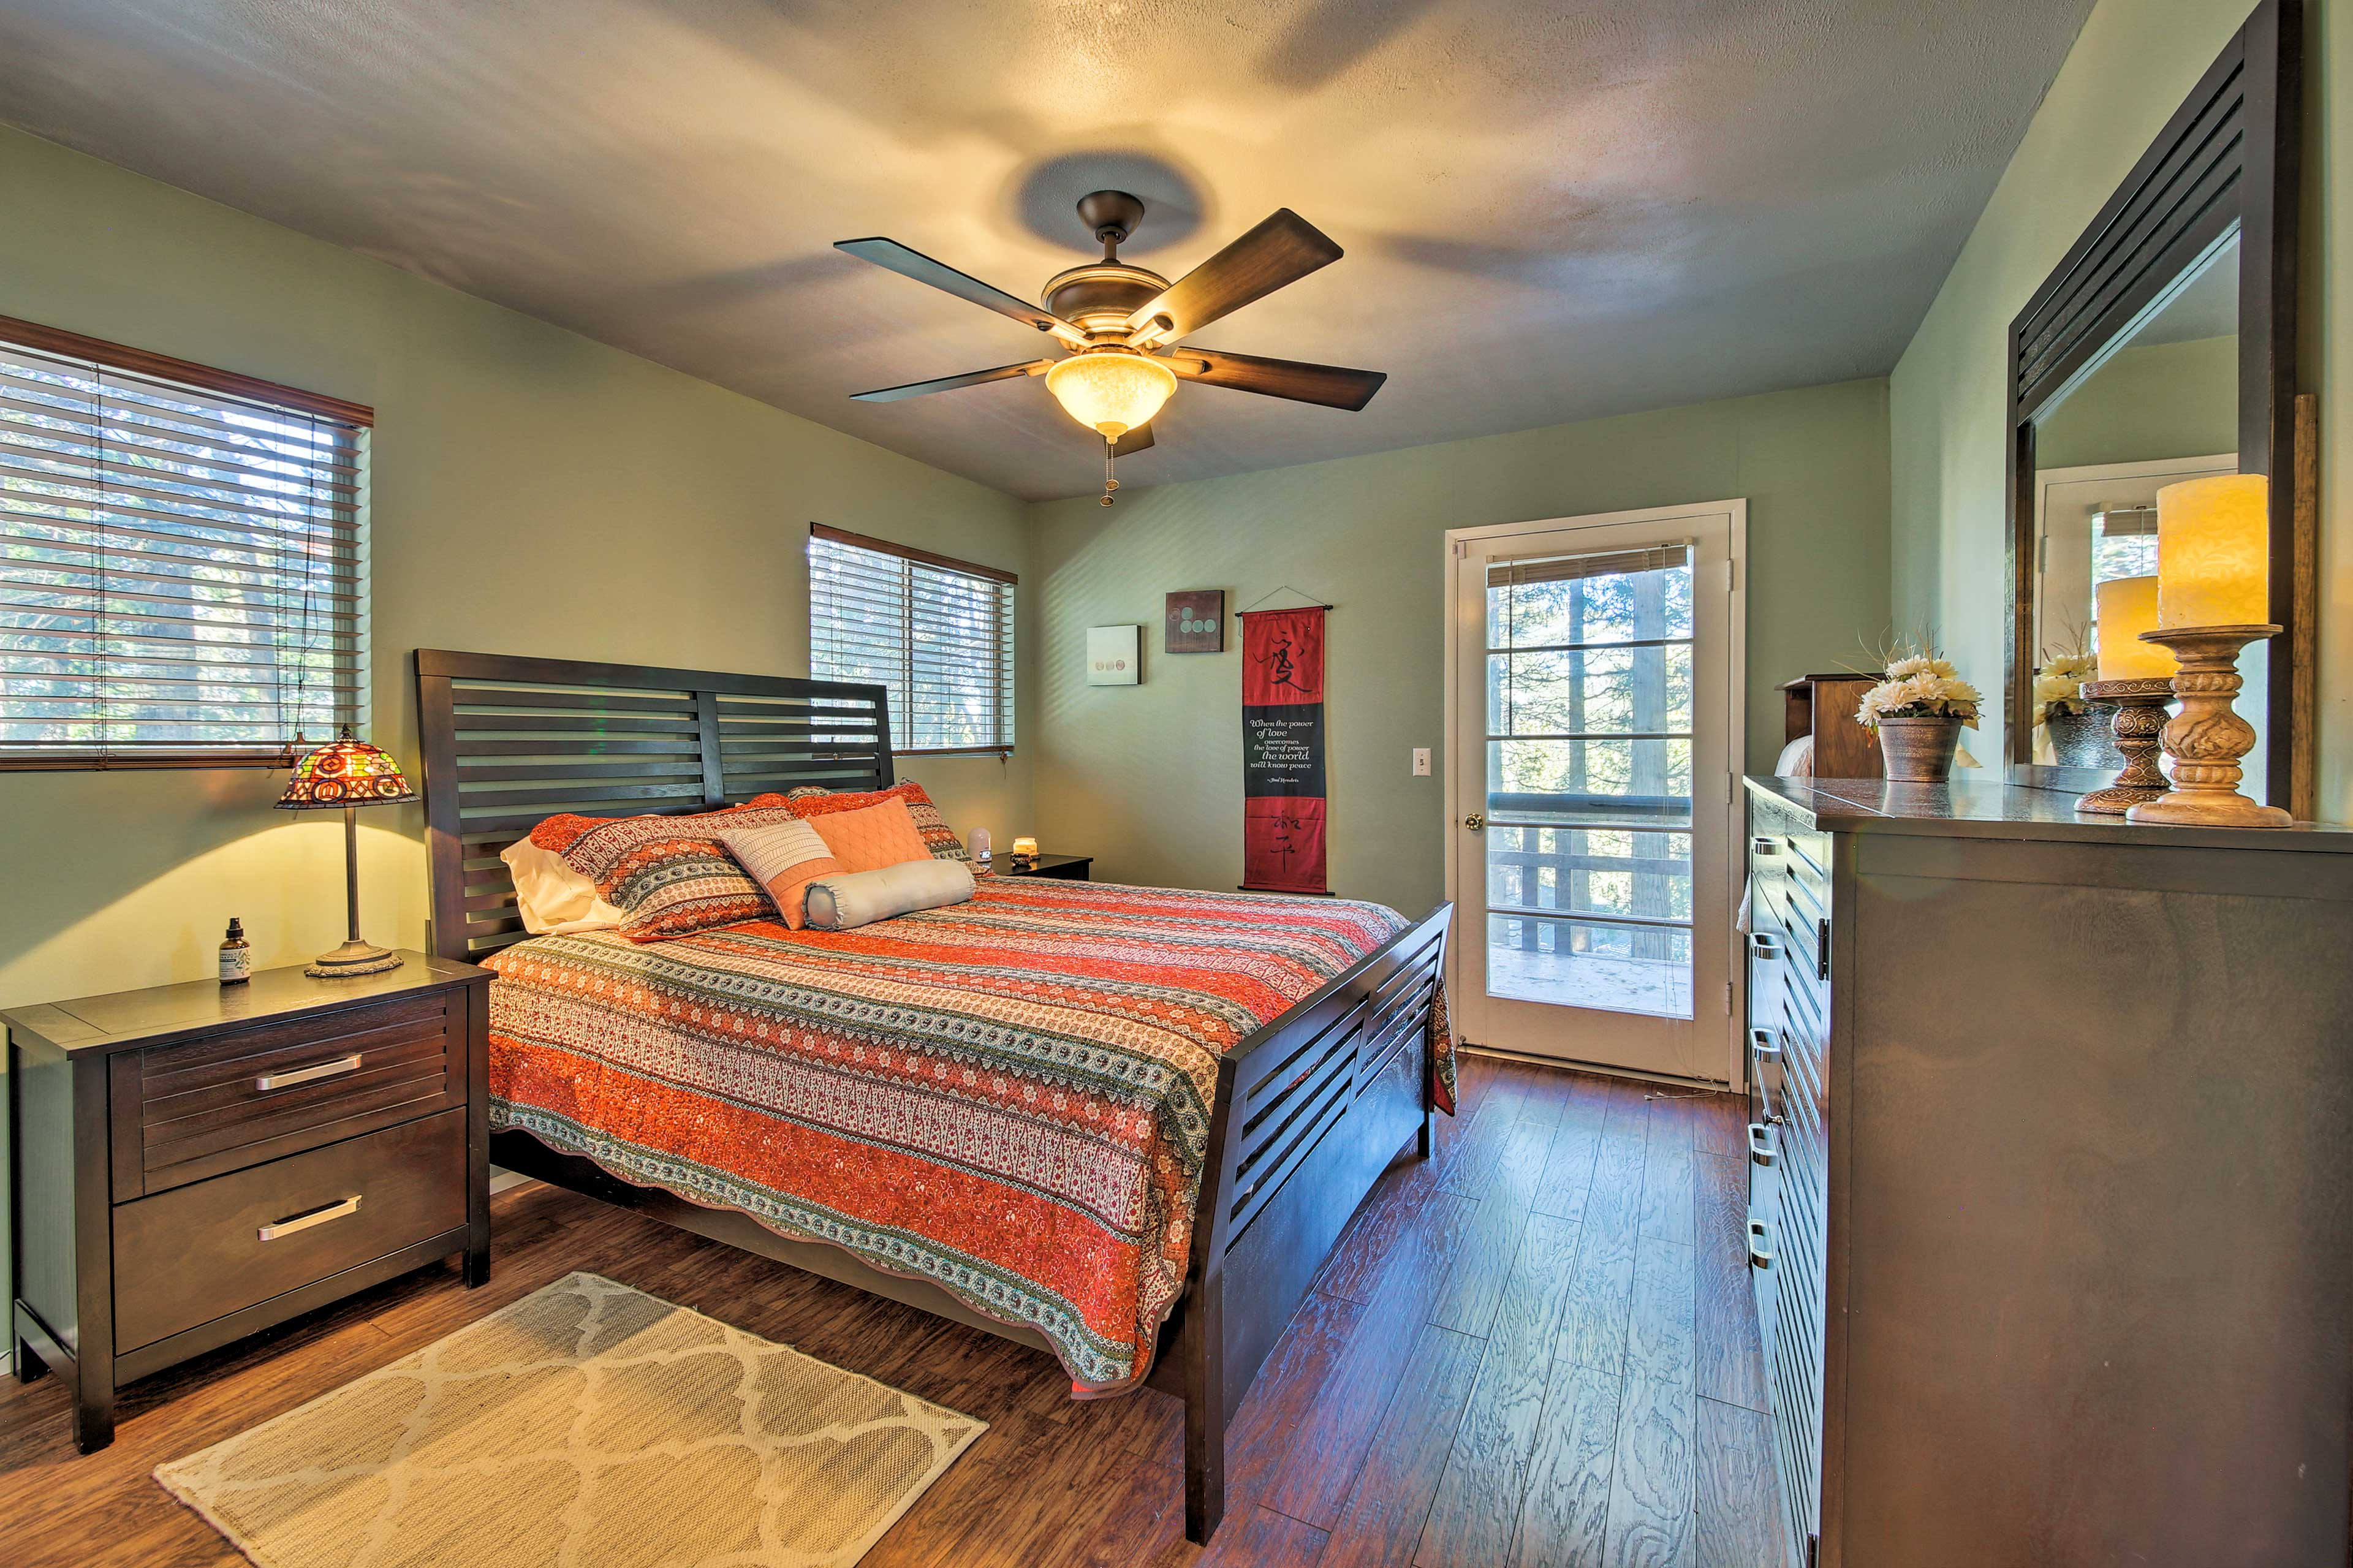 Curl up with your loved one in the master bedroom's queen bed.